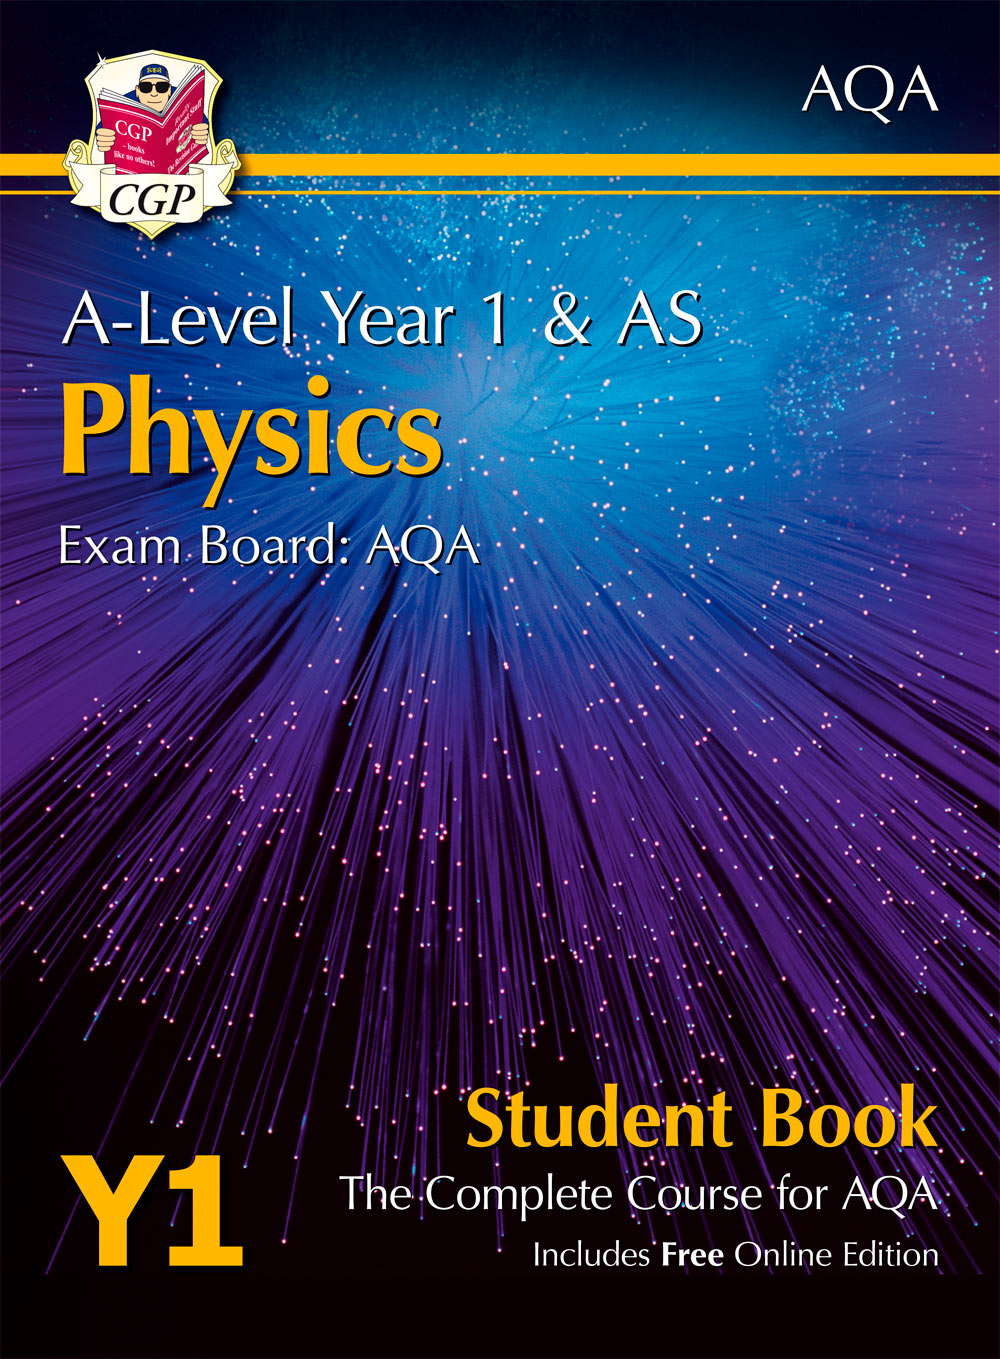 PATB53 - A-Level Physics for AQA: Year 1 & AS Student Book